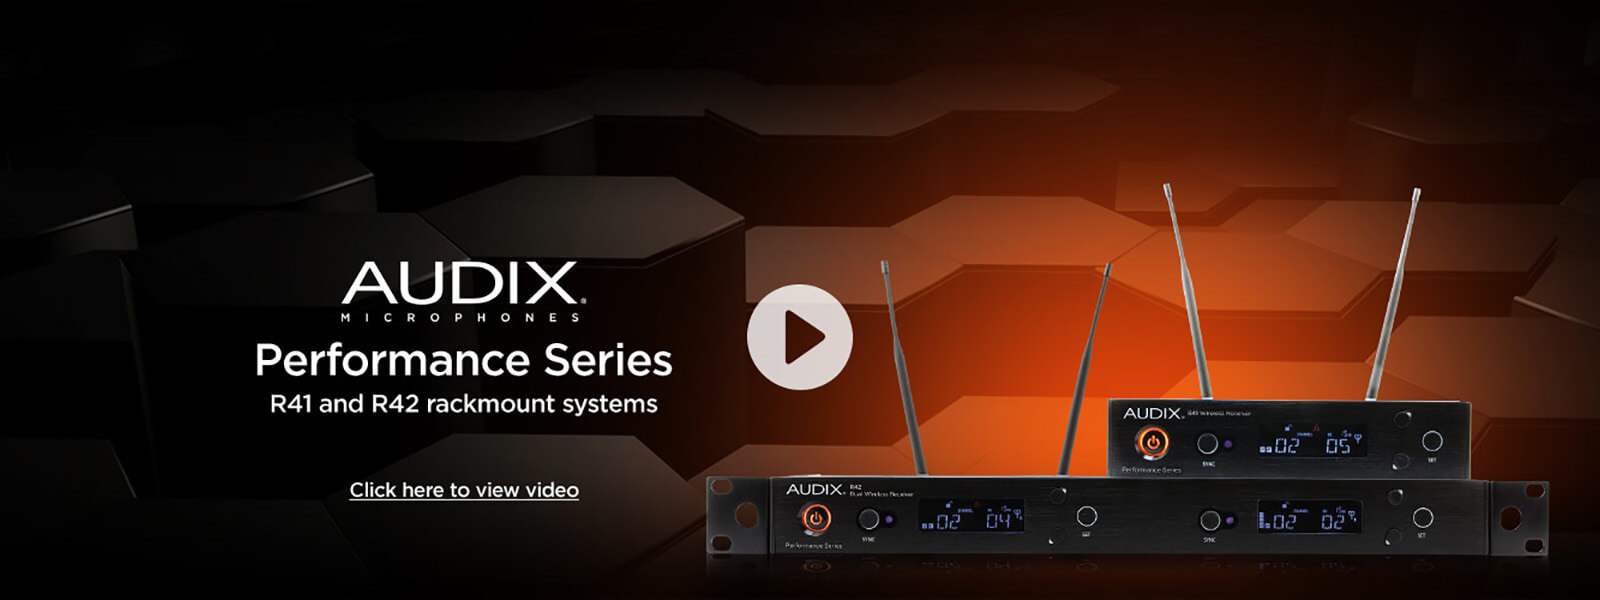 Audix microphones performance series video